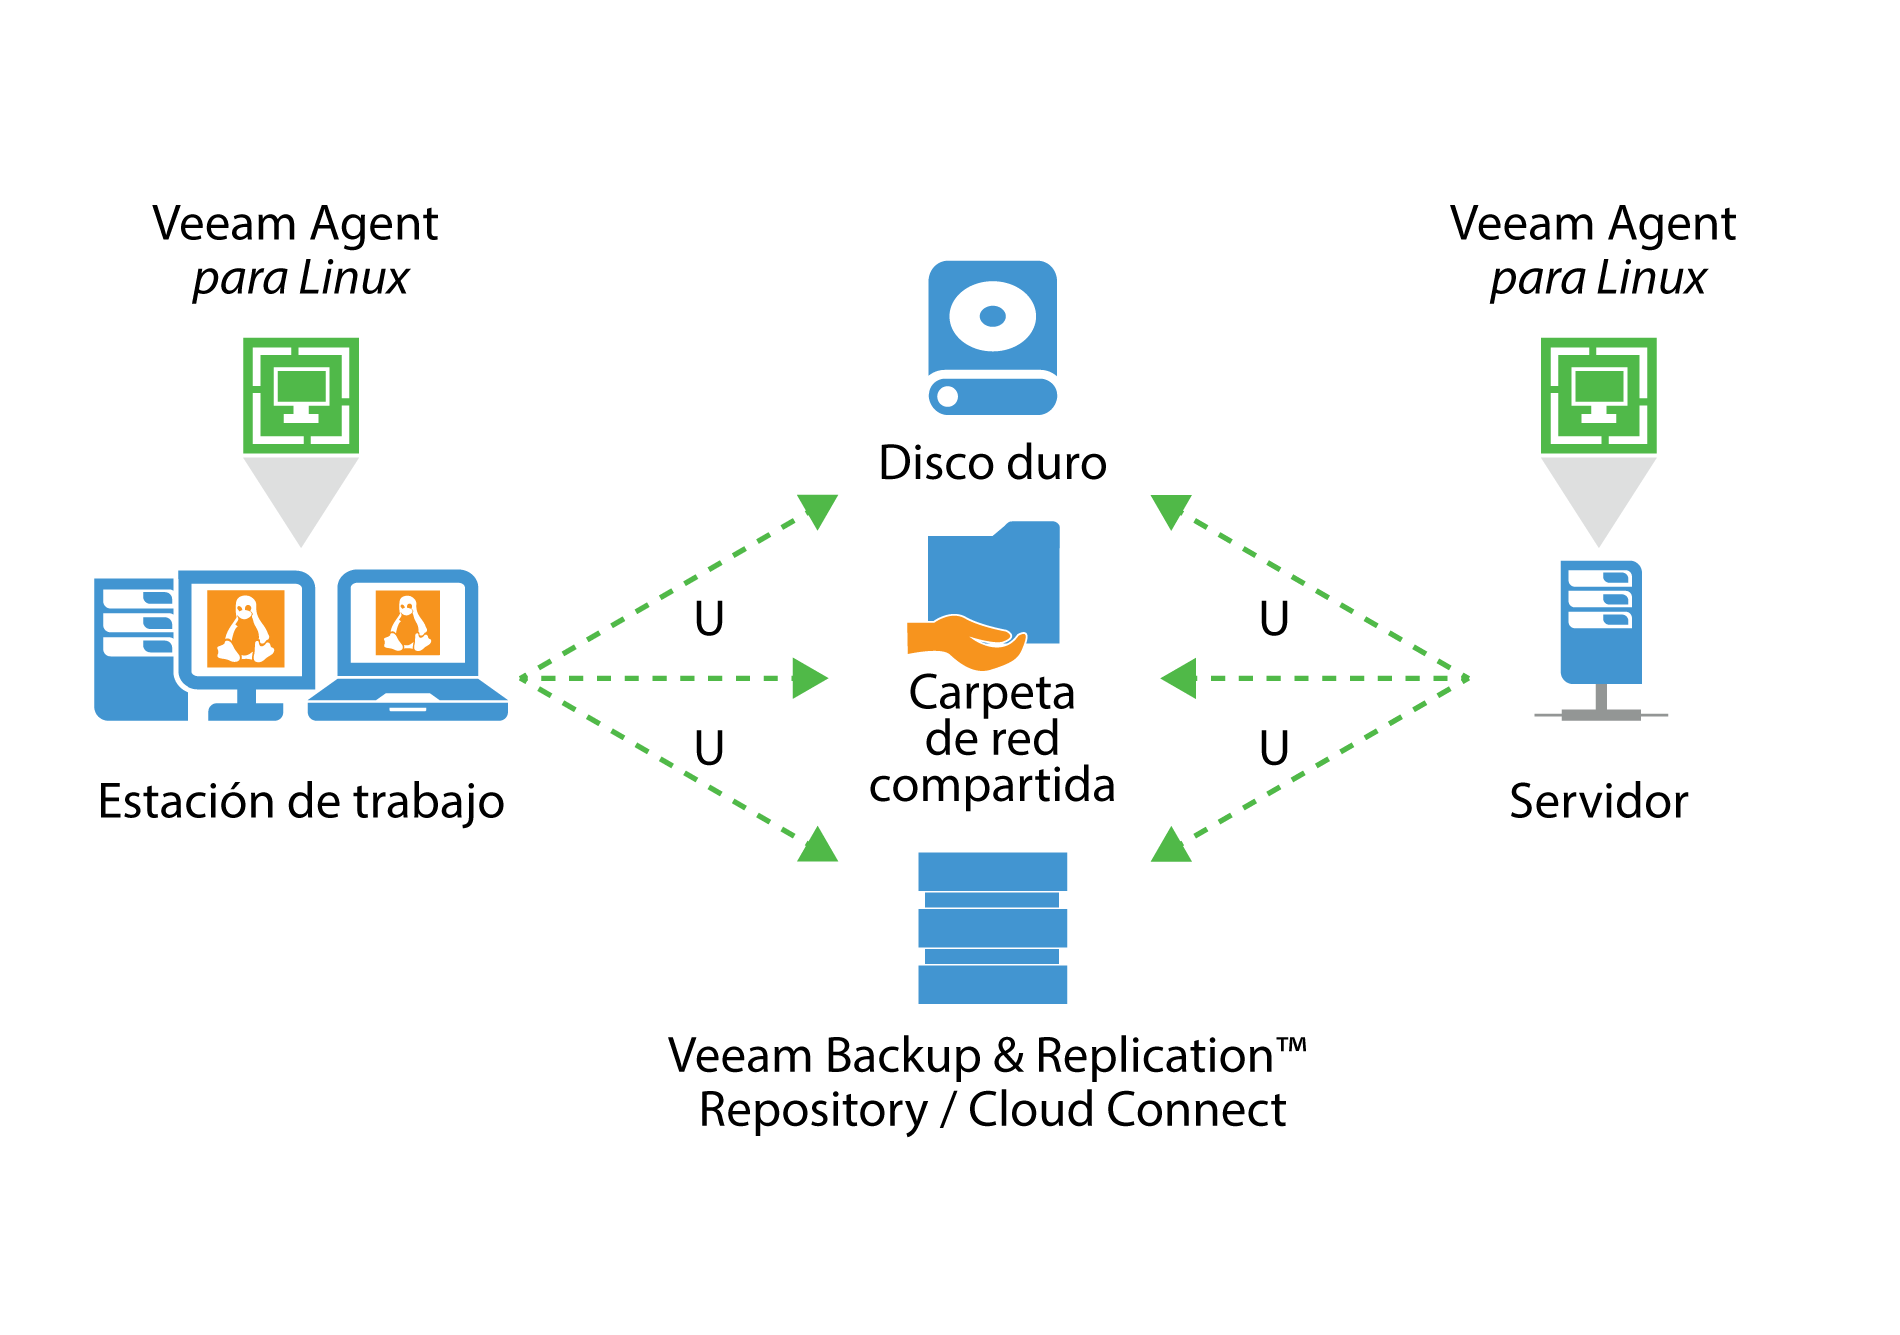 veeam_endpoint_how_it_works_for_linux_es-lat.png